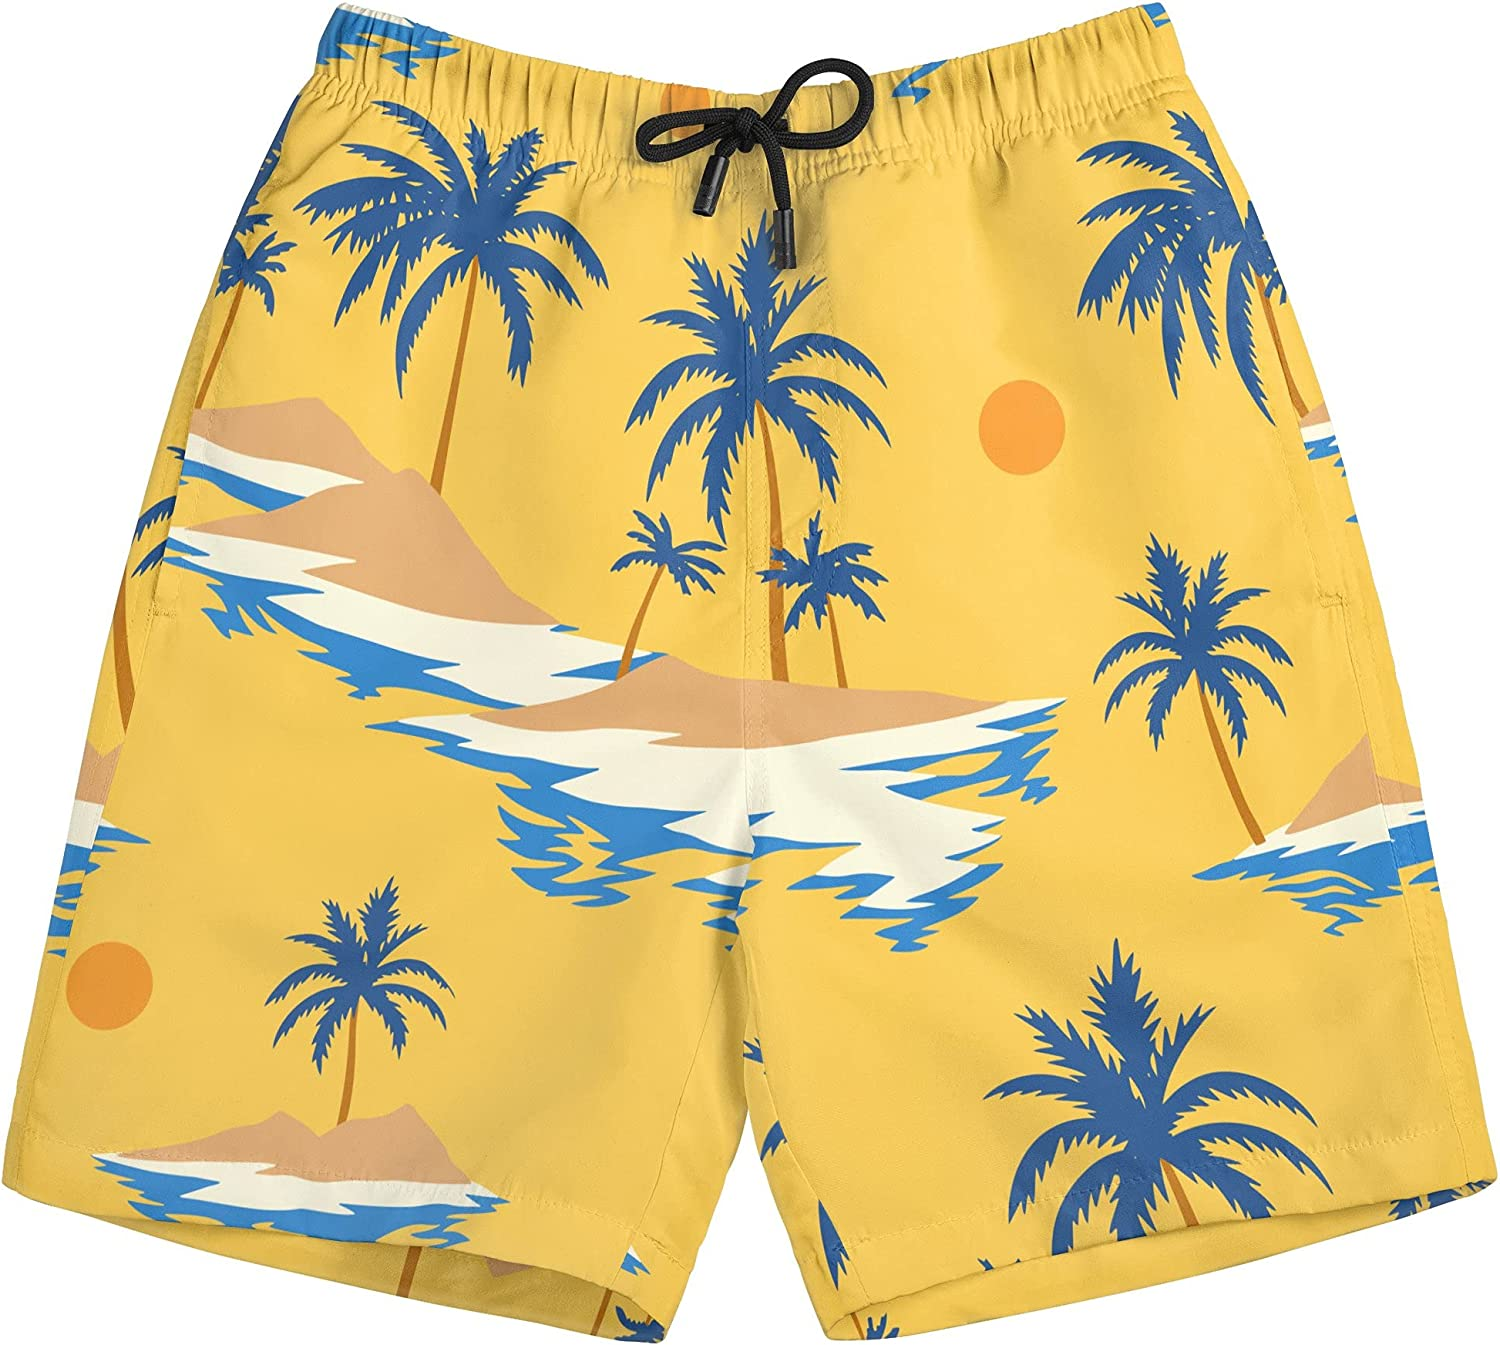 Depoga Boys Quick Dry Swim Trunks Drawsting Beach Surf Boards Shorts Swimsuits Hawaii Print with Pockets 4T-16T